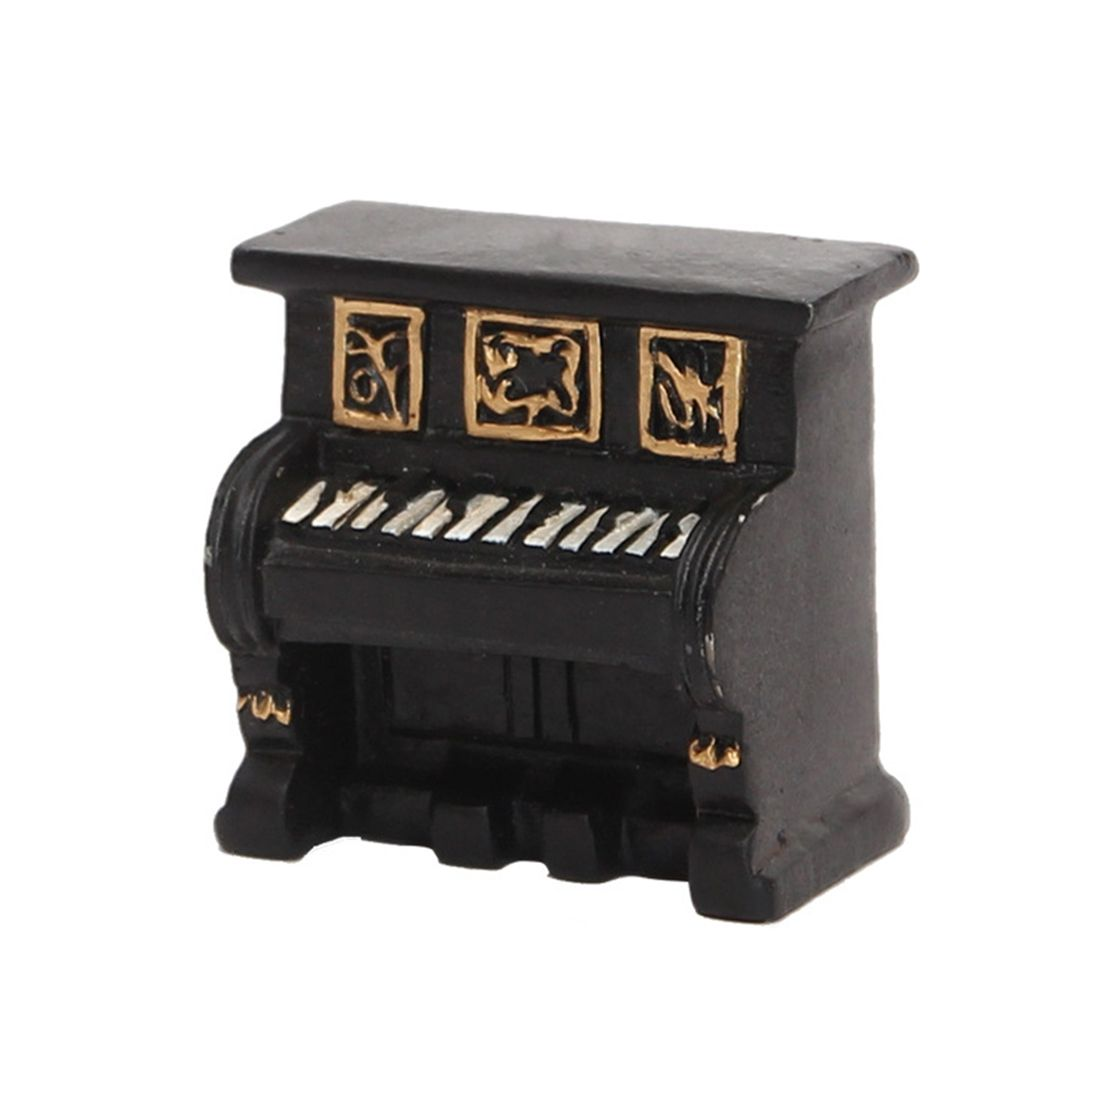 Vintage old creative resin mini piano small ornaments desk accessories Home decorations childrens gifts shop shooting props